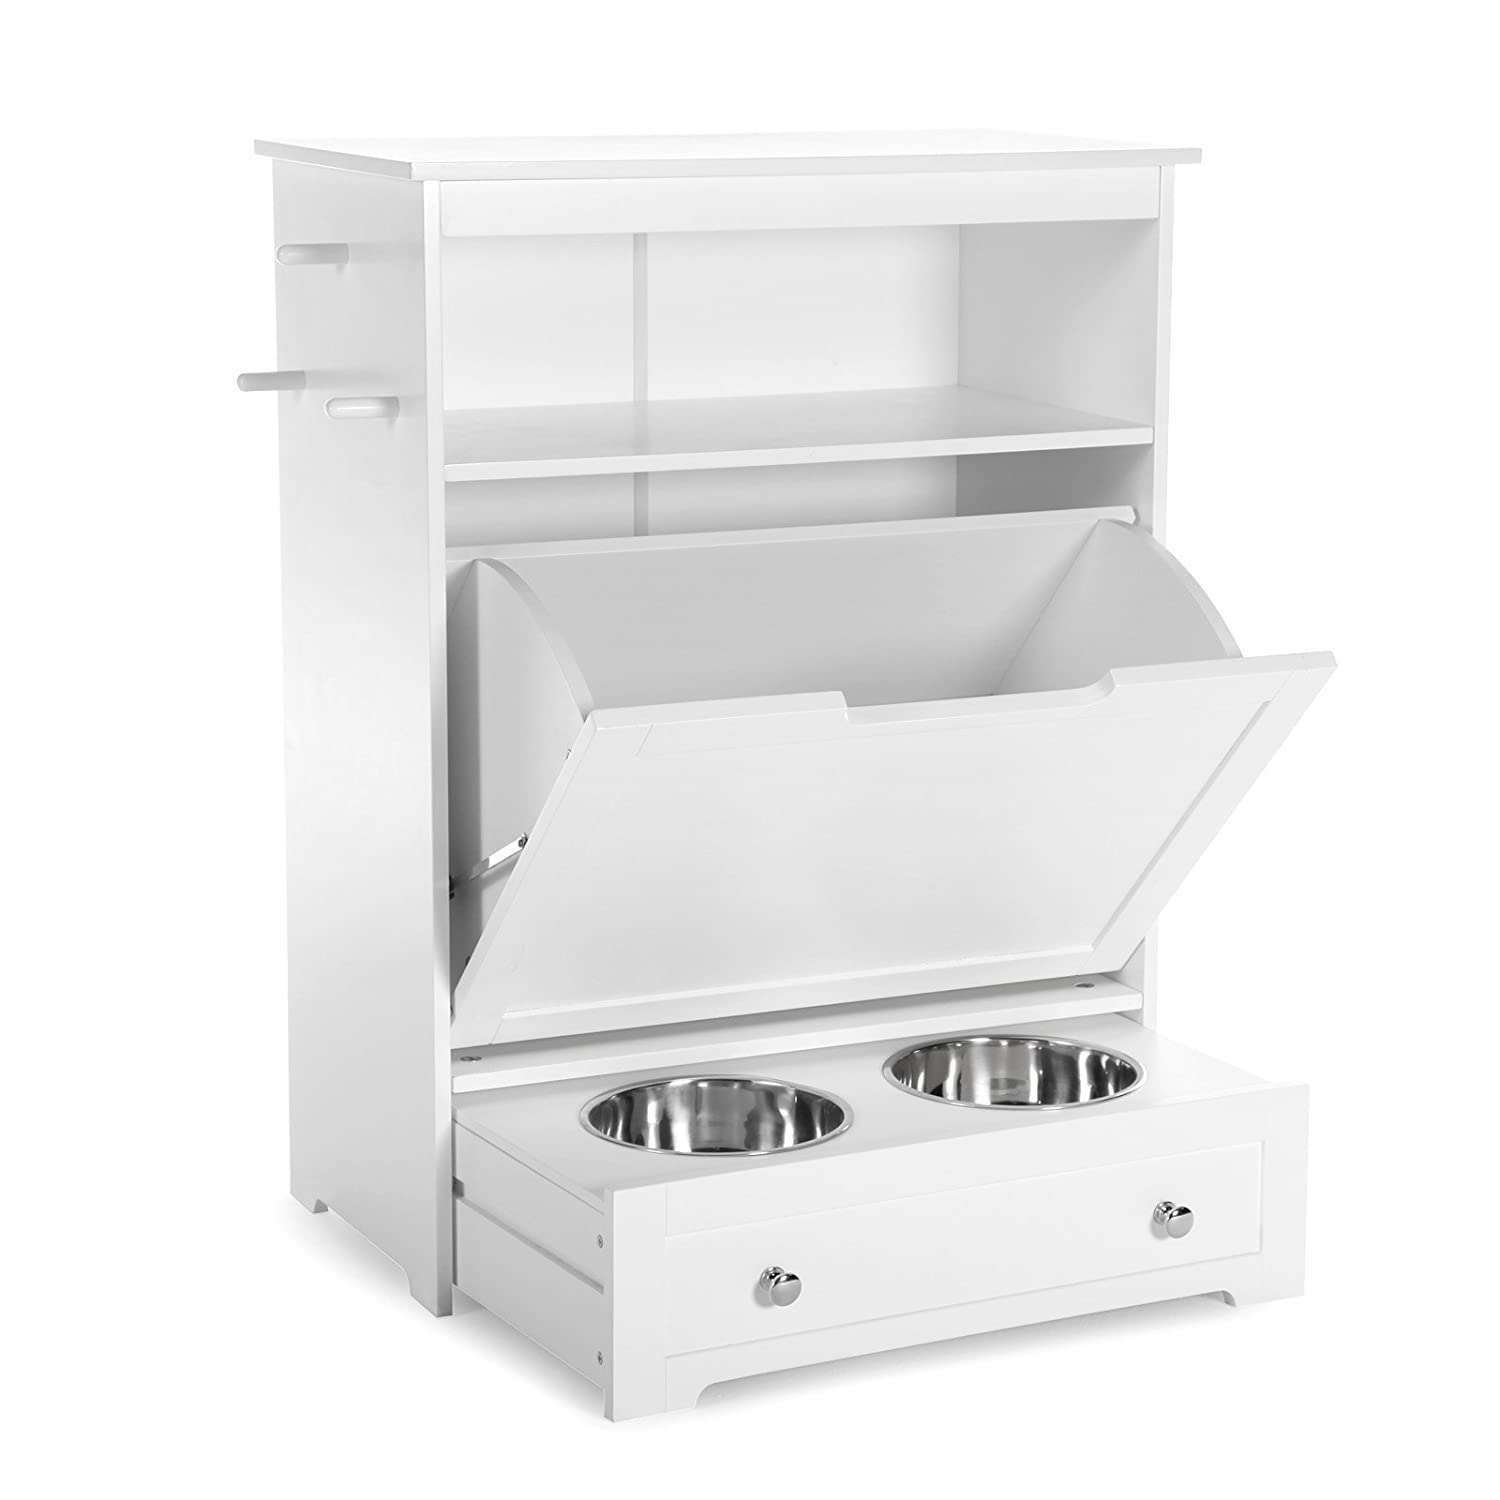 Amazon.com : Boomer U0026 George Pet Feeder Station Furniture Built In Home  Kitchen Laundry Room : Pet Supplies